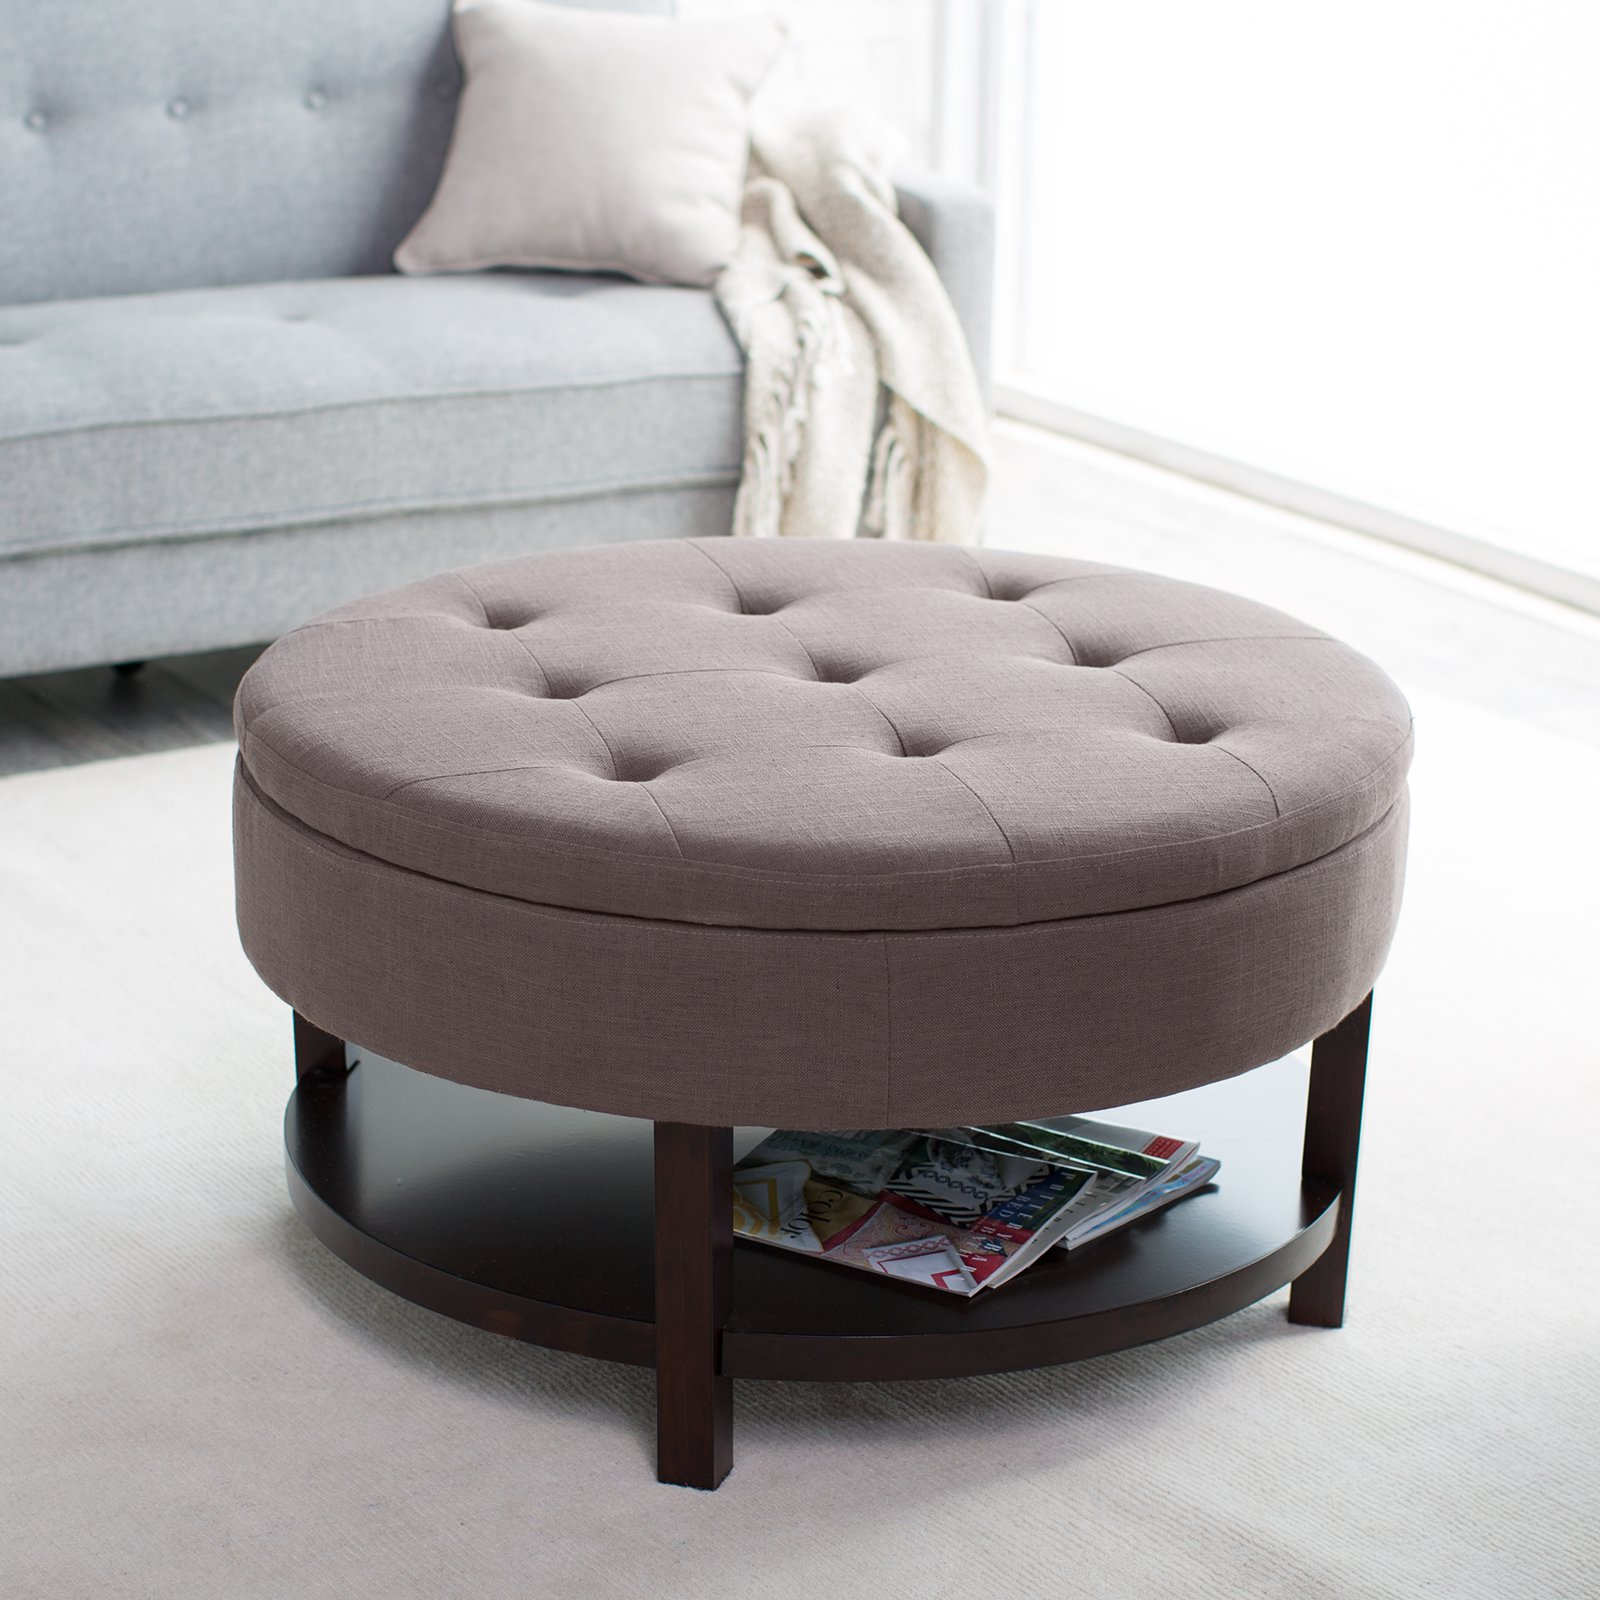 10 Inspirations of Round Coffee Table Ottomans with Storage